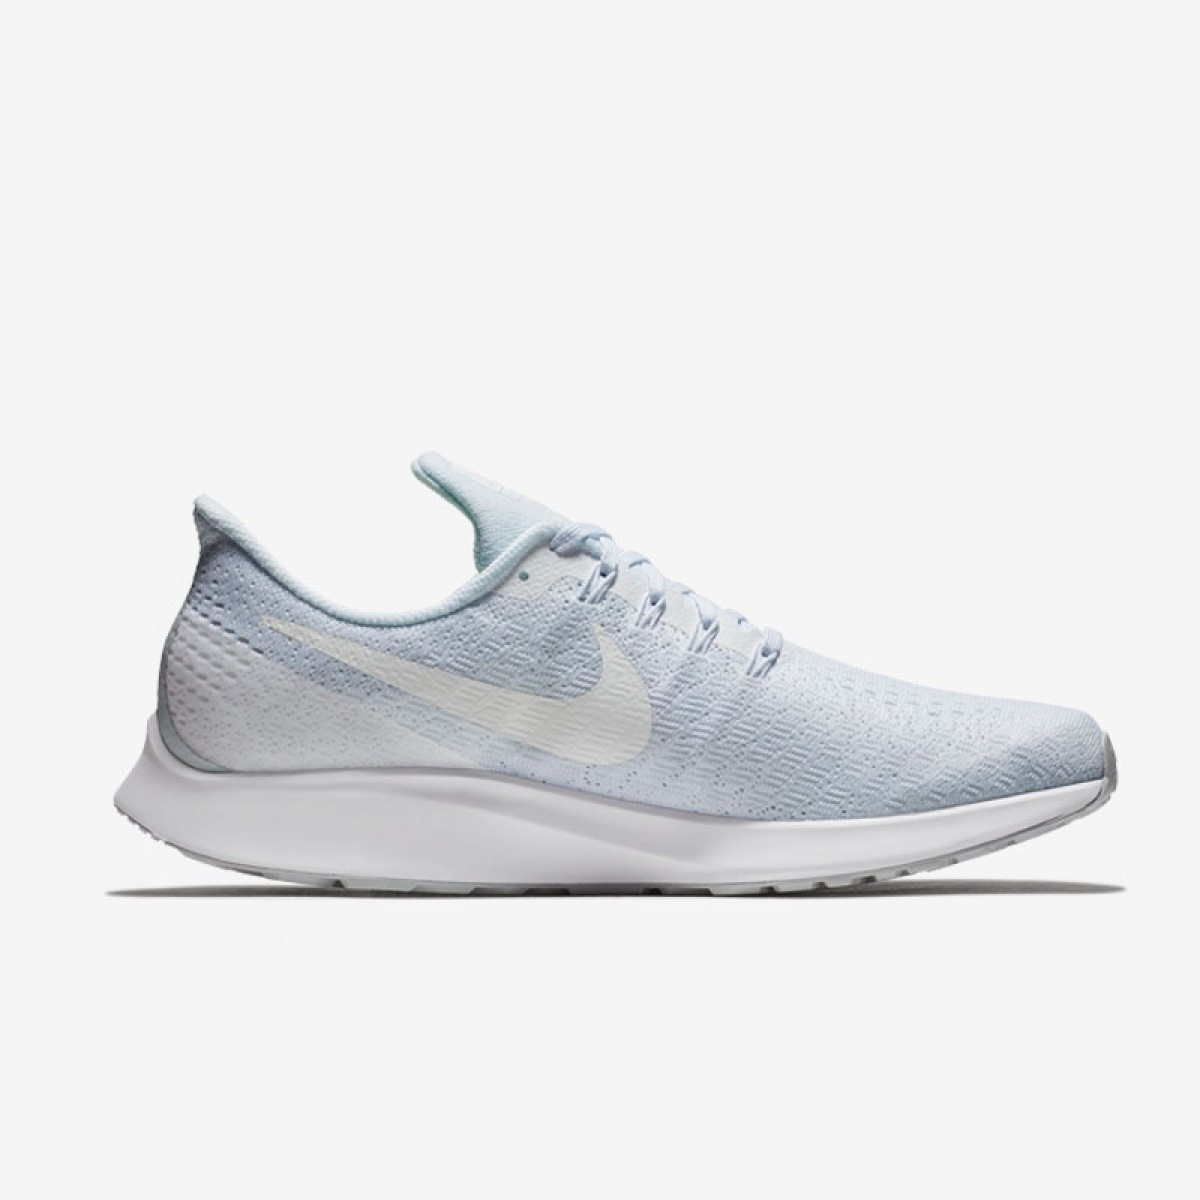 Nike Air Zoom Pegasus 35 'Total White'